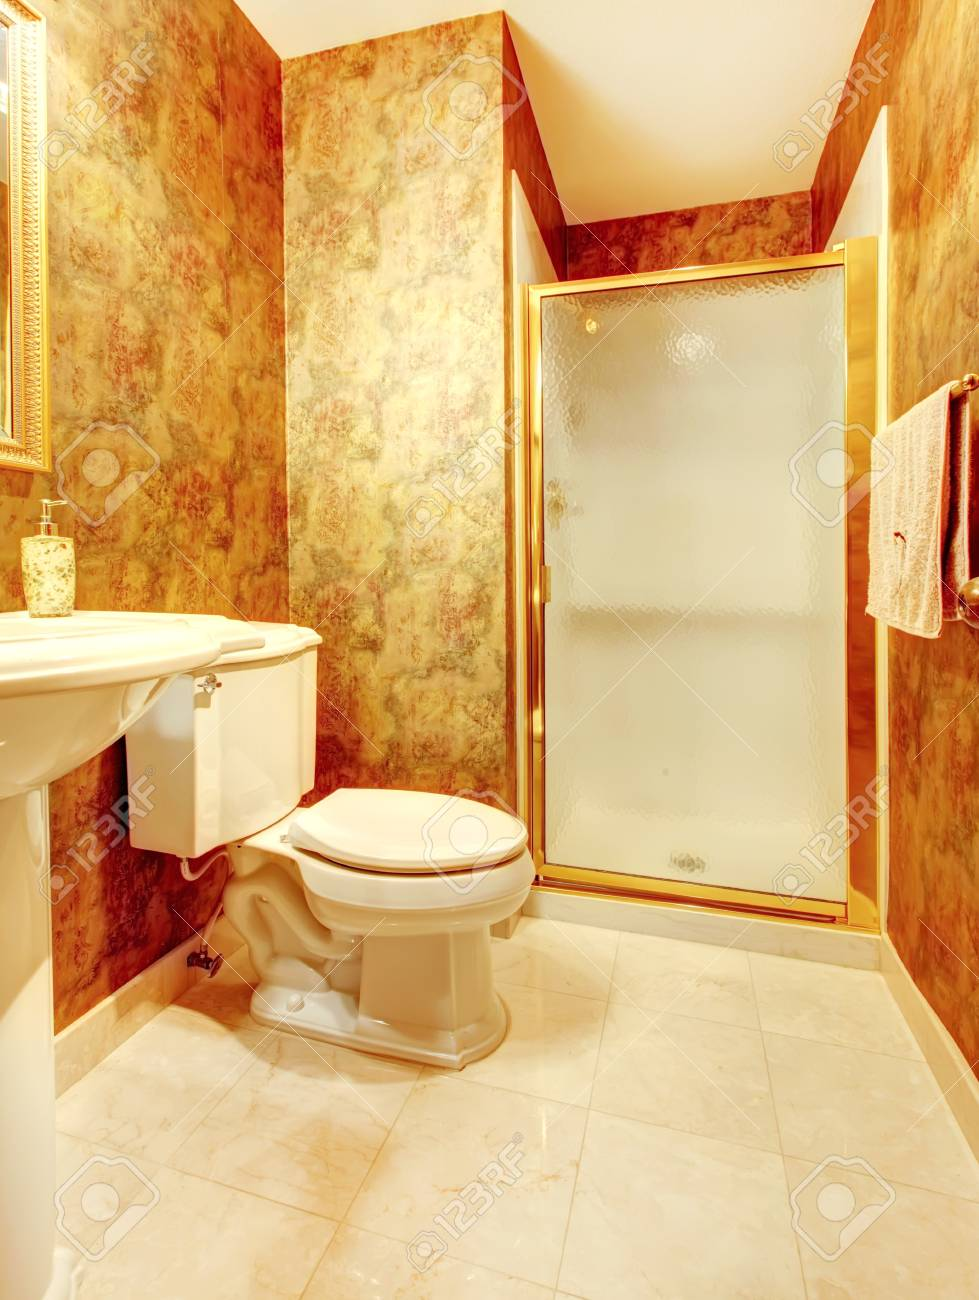 Golden Antique Bathroom With Shower And Marble Tiles Stock Photo Picture And Royalty Free Image Image 16306547